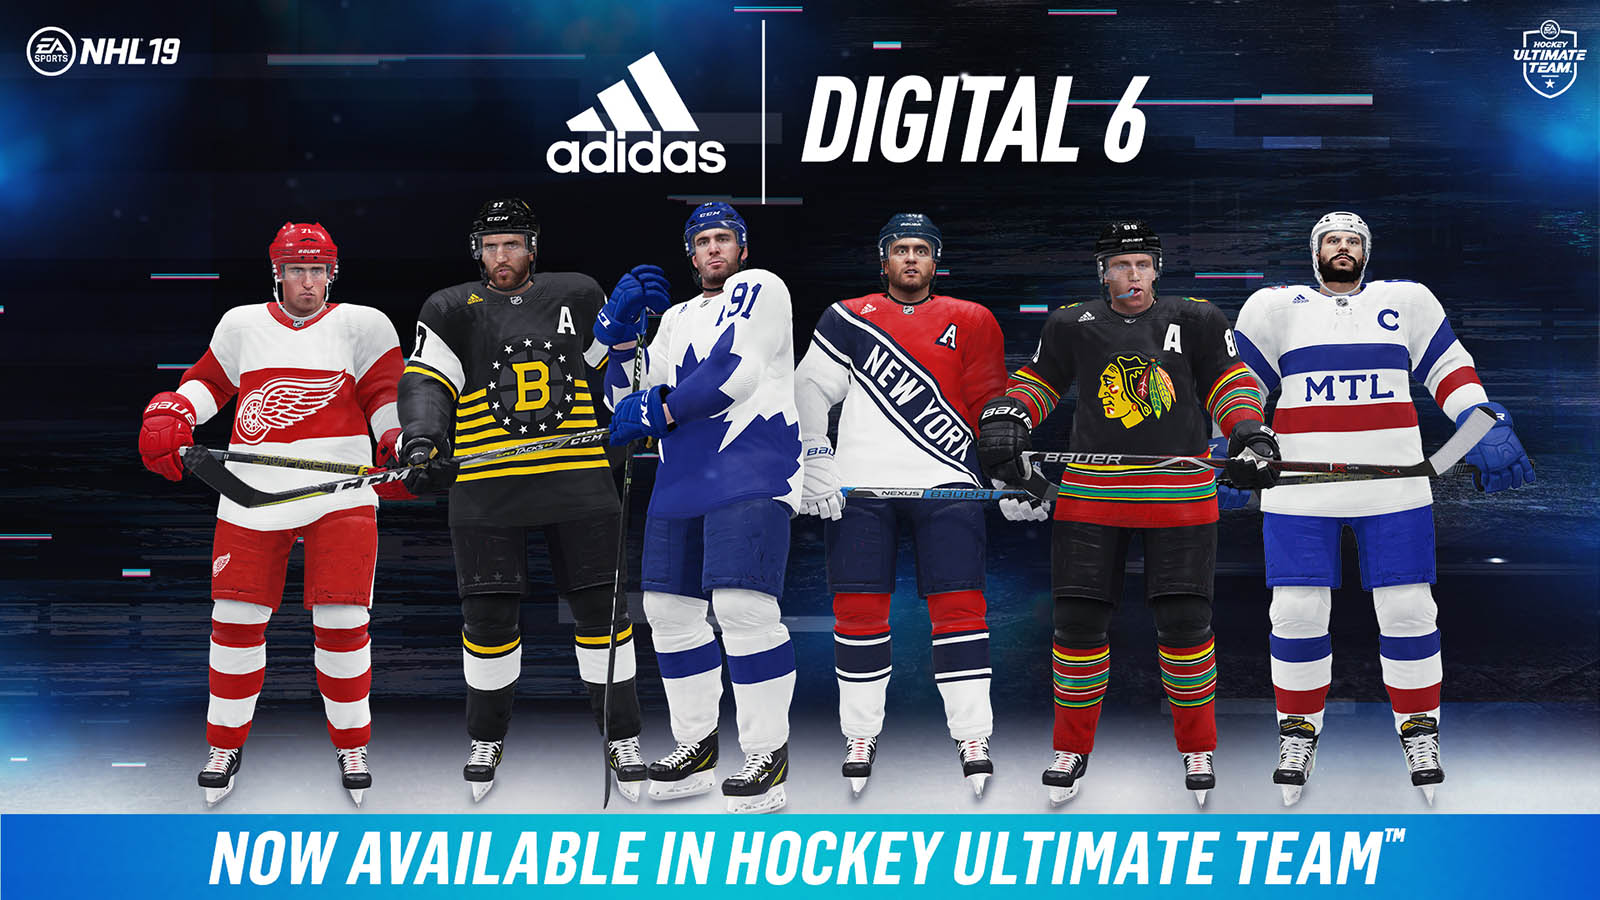 bde413b7b17 Digital 6 Jerseys for NHL 19 — UNISWAG